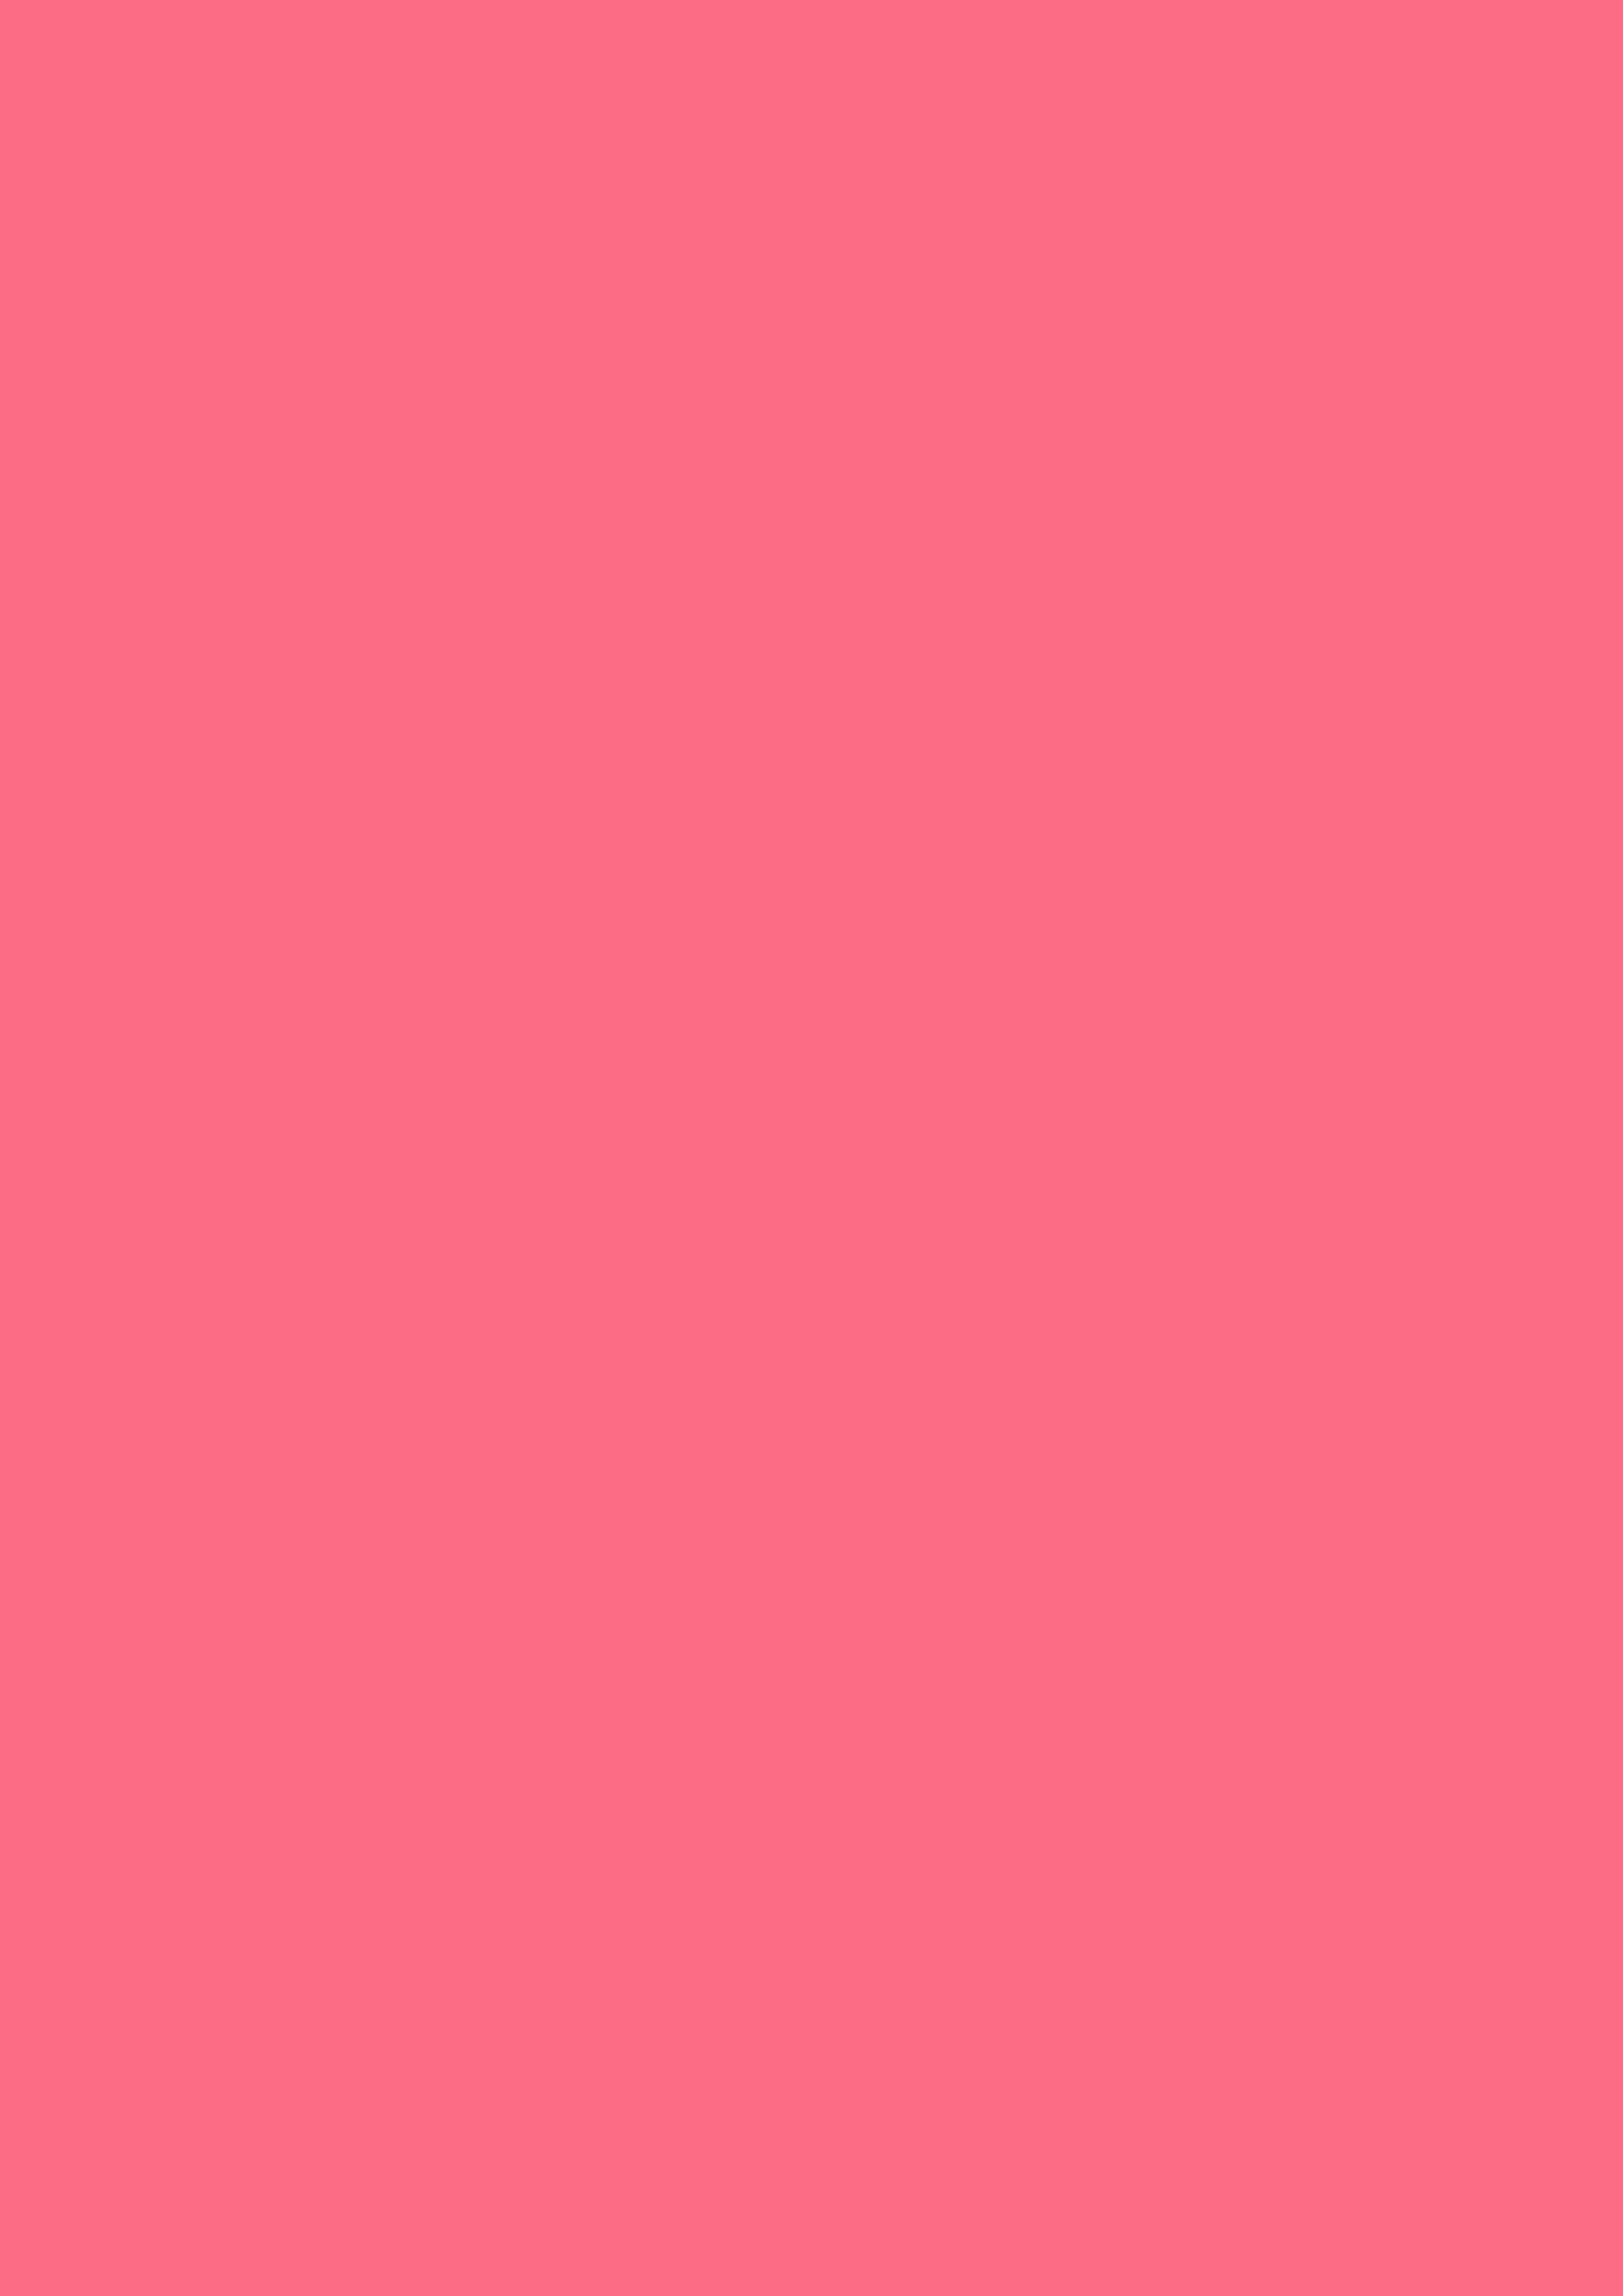 2480x3508 Wild Watermelon Solid Color Background